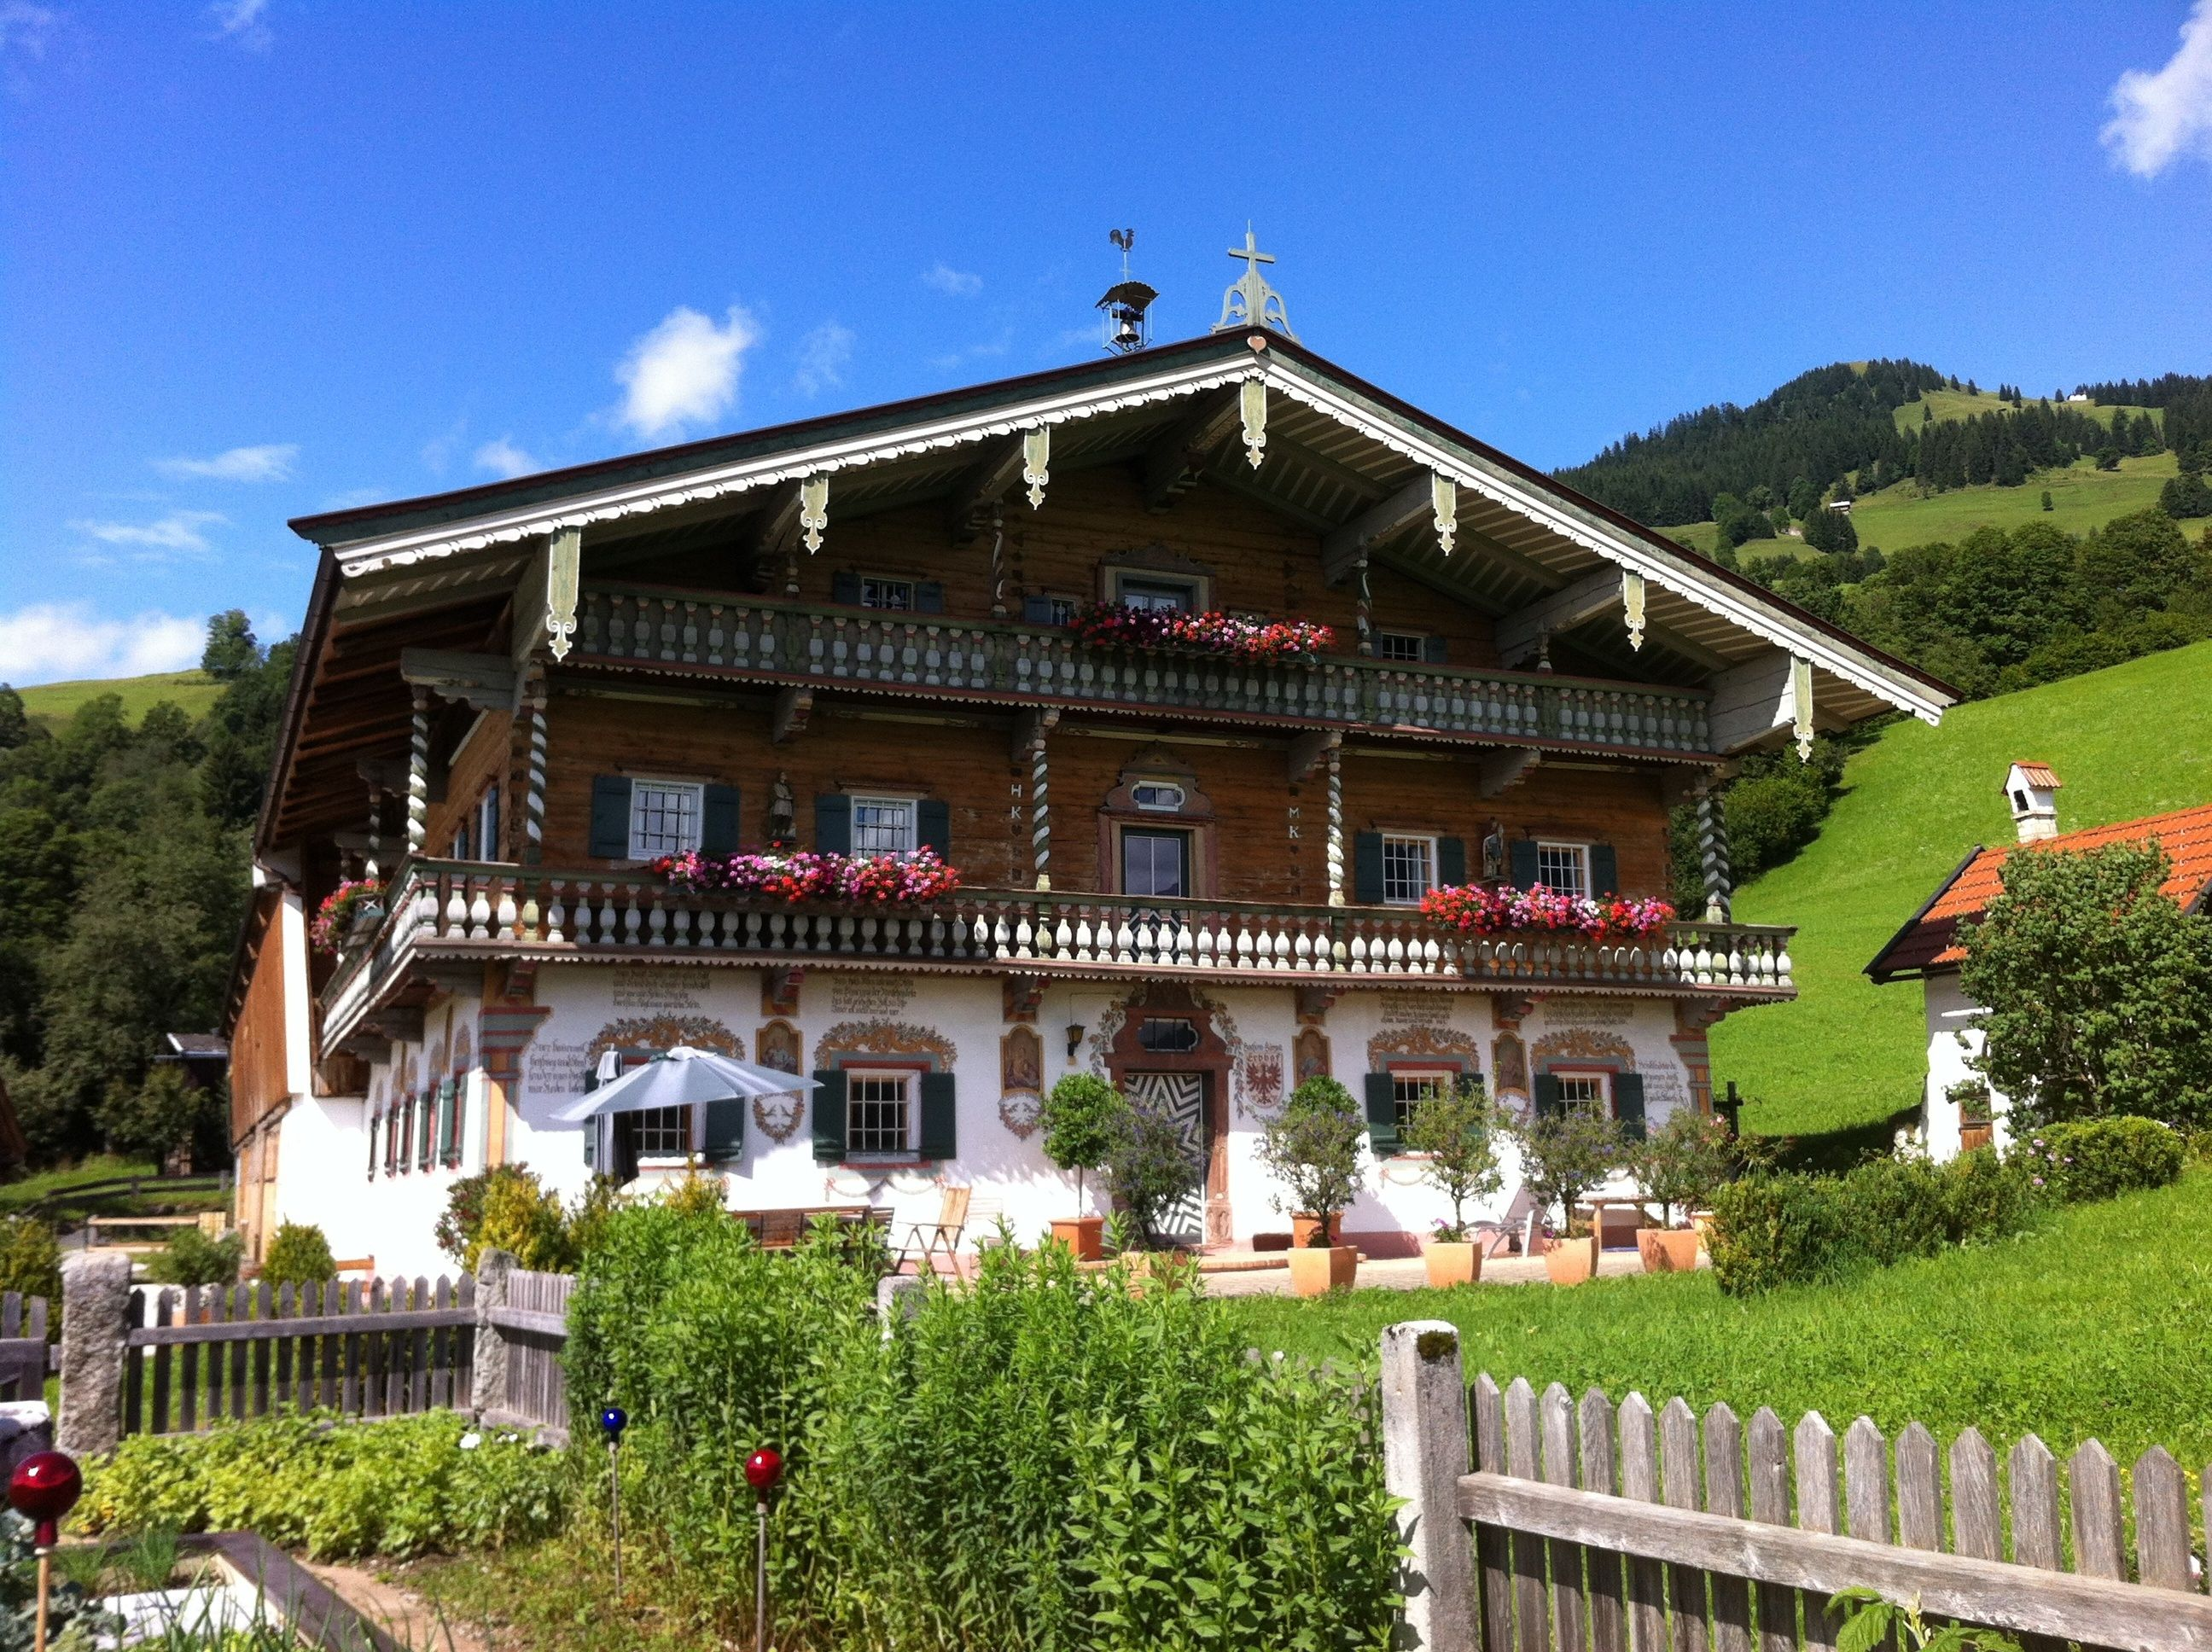 Maison Architecture Suisse Discover Traditional Architecture In Kitzbuehel Tirol